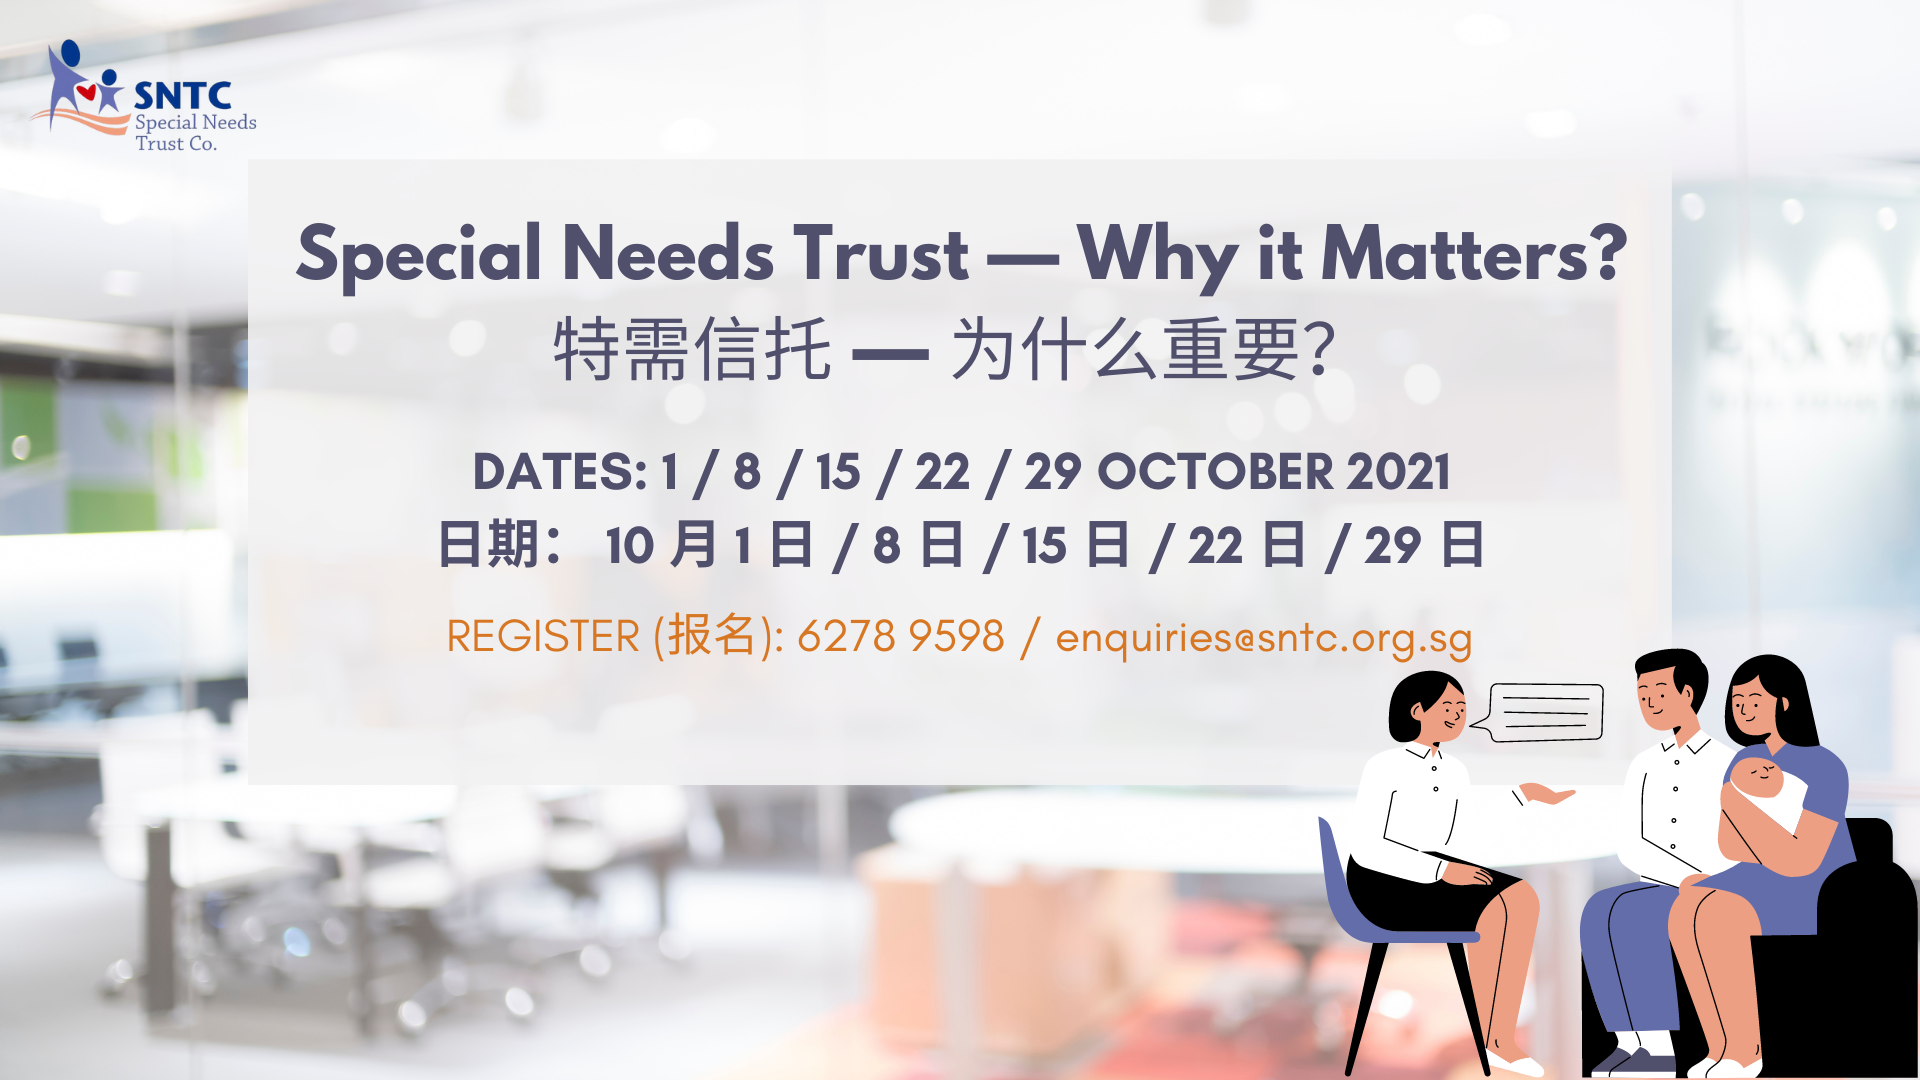 Weekly Online Talks: Special Needs Trust – Why It Matters? (特需信托 – 为什么重要?) - 1, 8, 15, 22, 29 October 2021